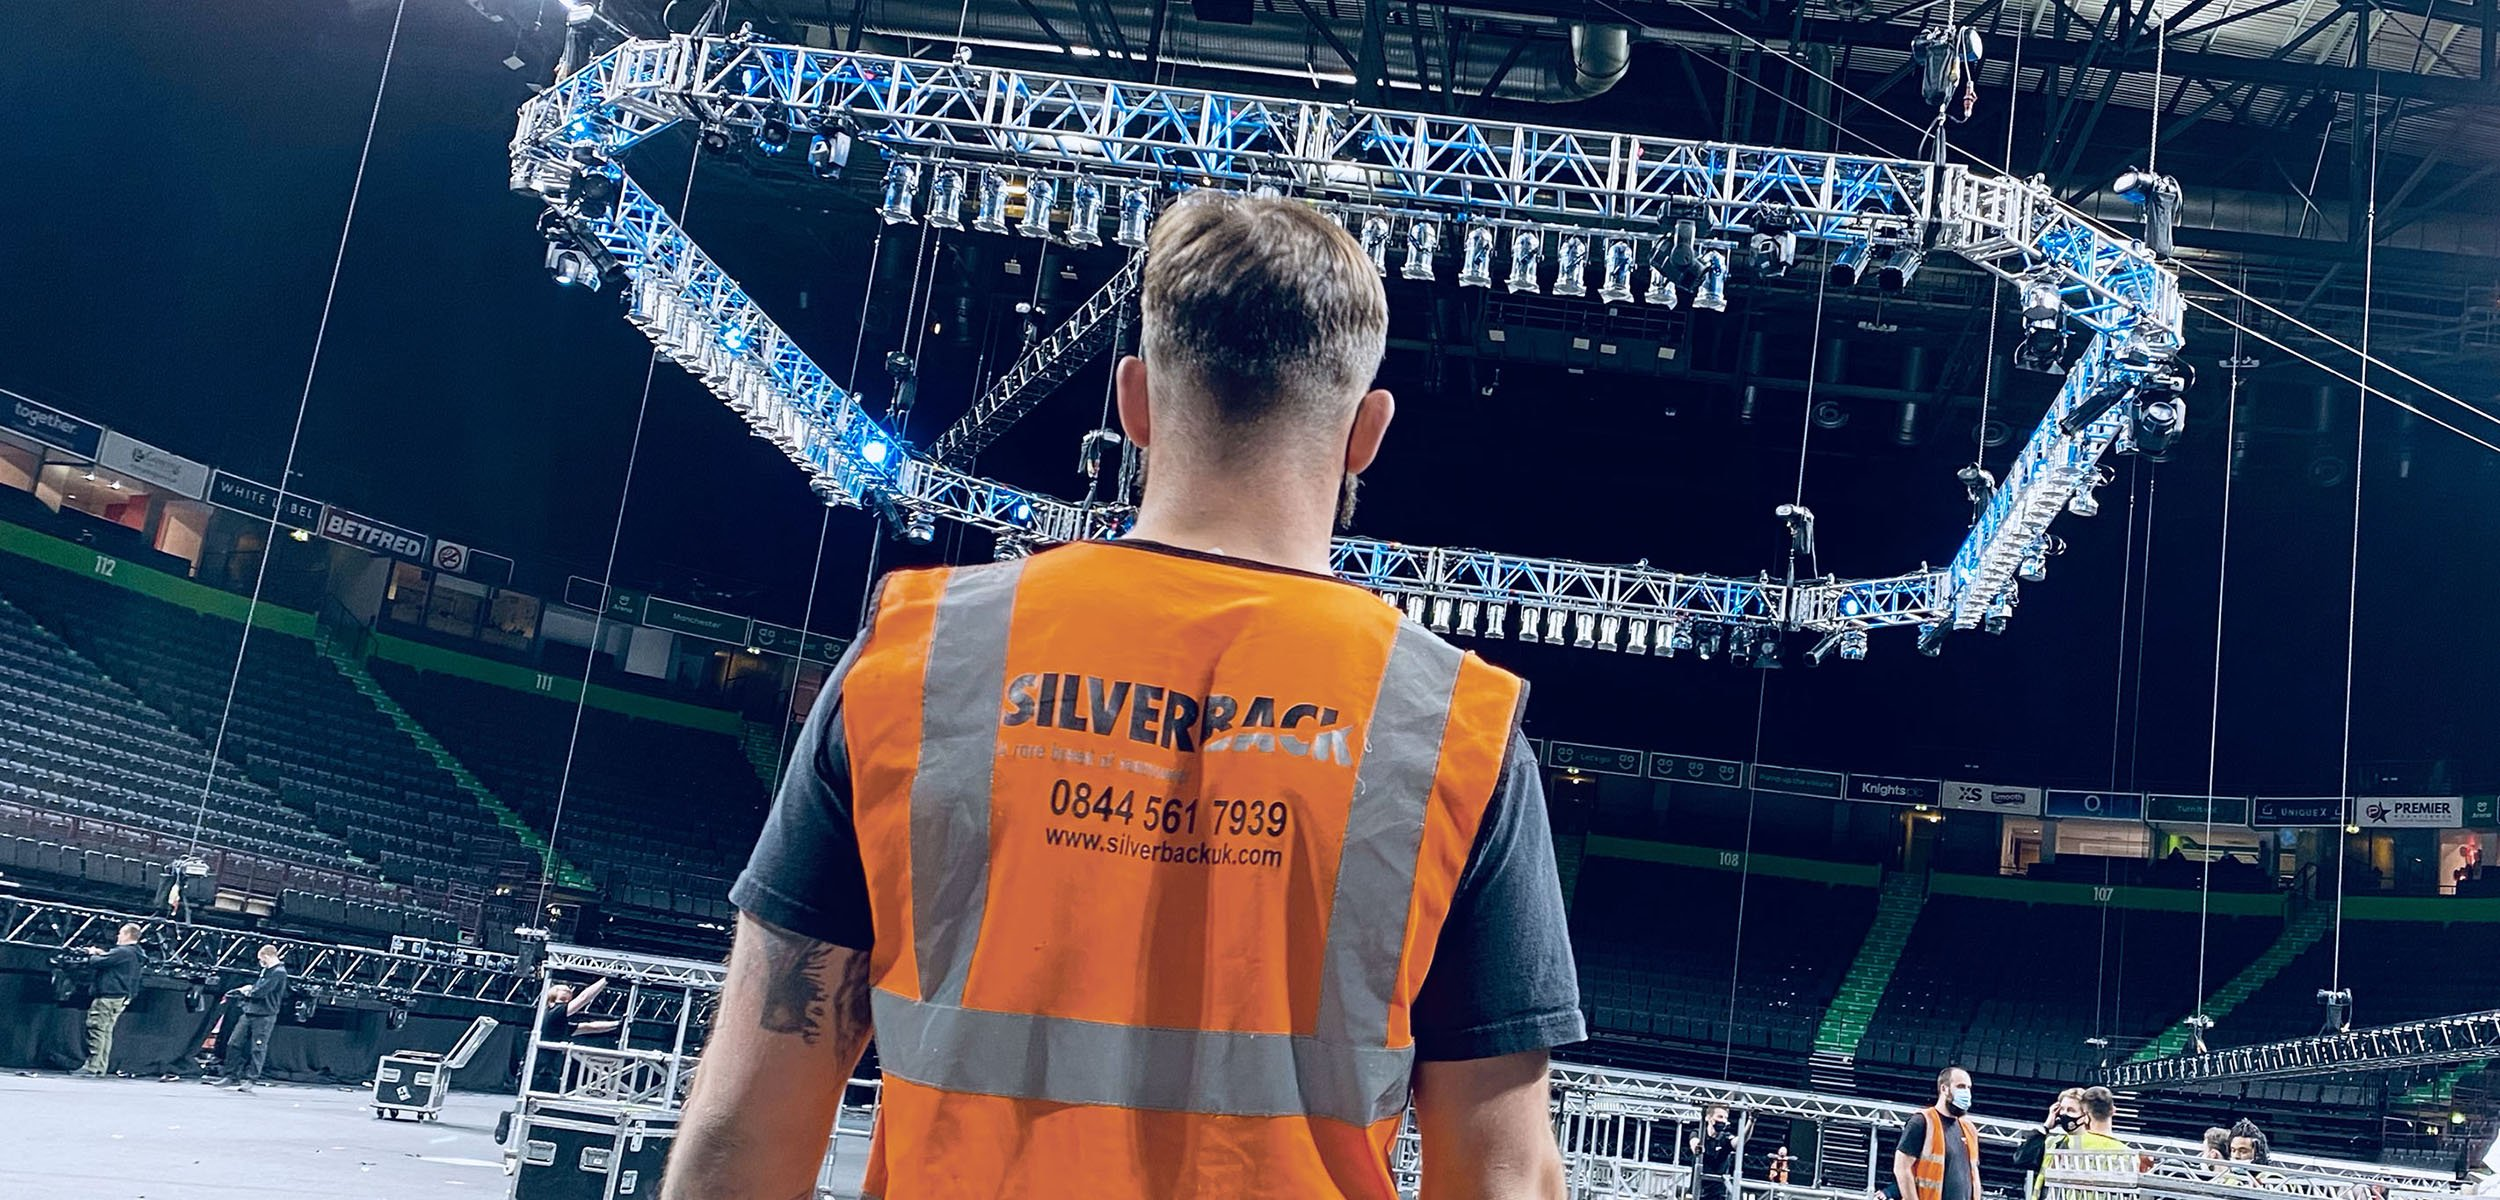 Silverback crew member at boxing event build